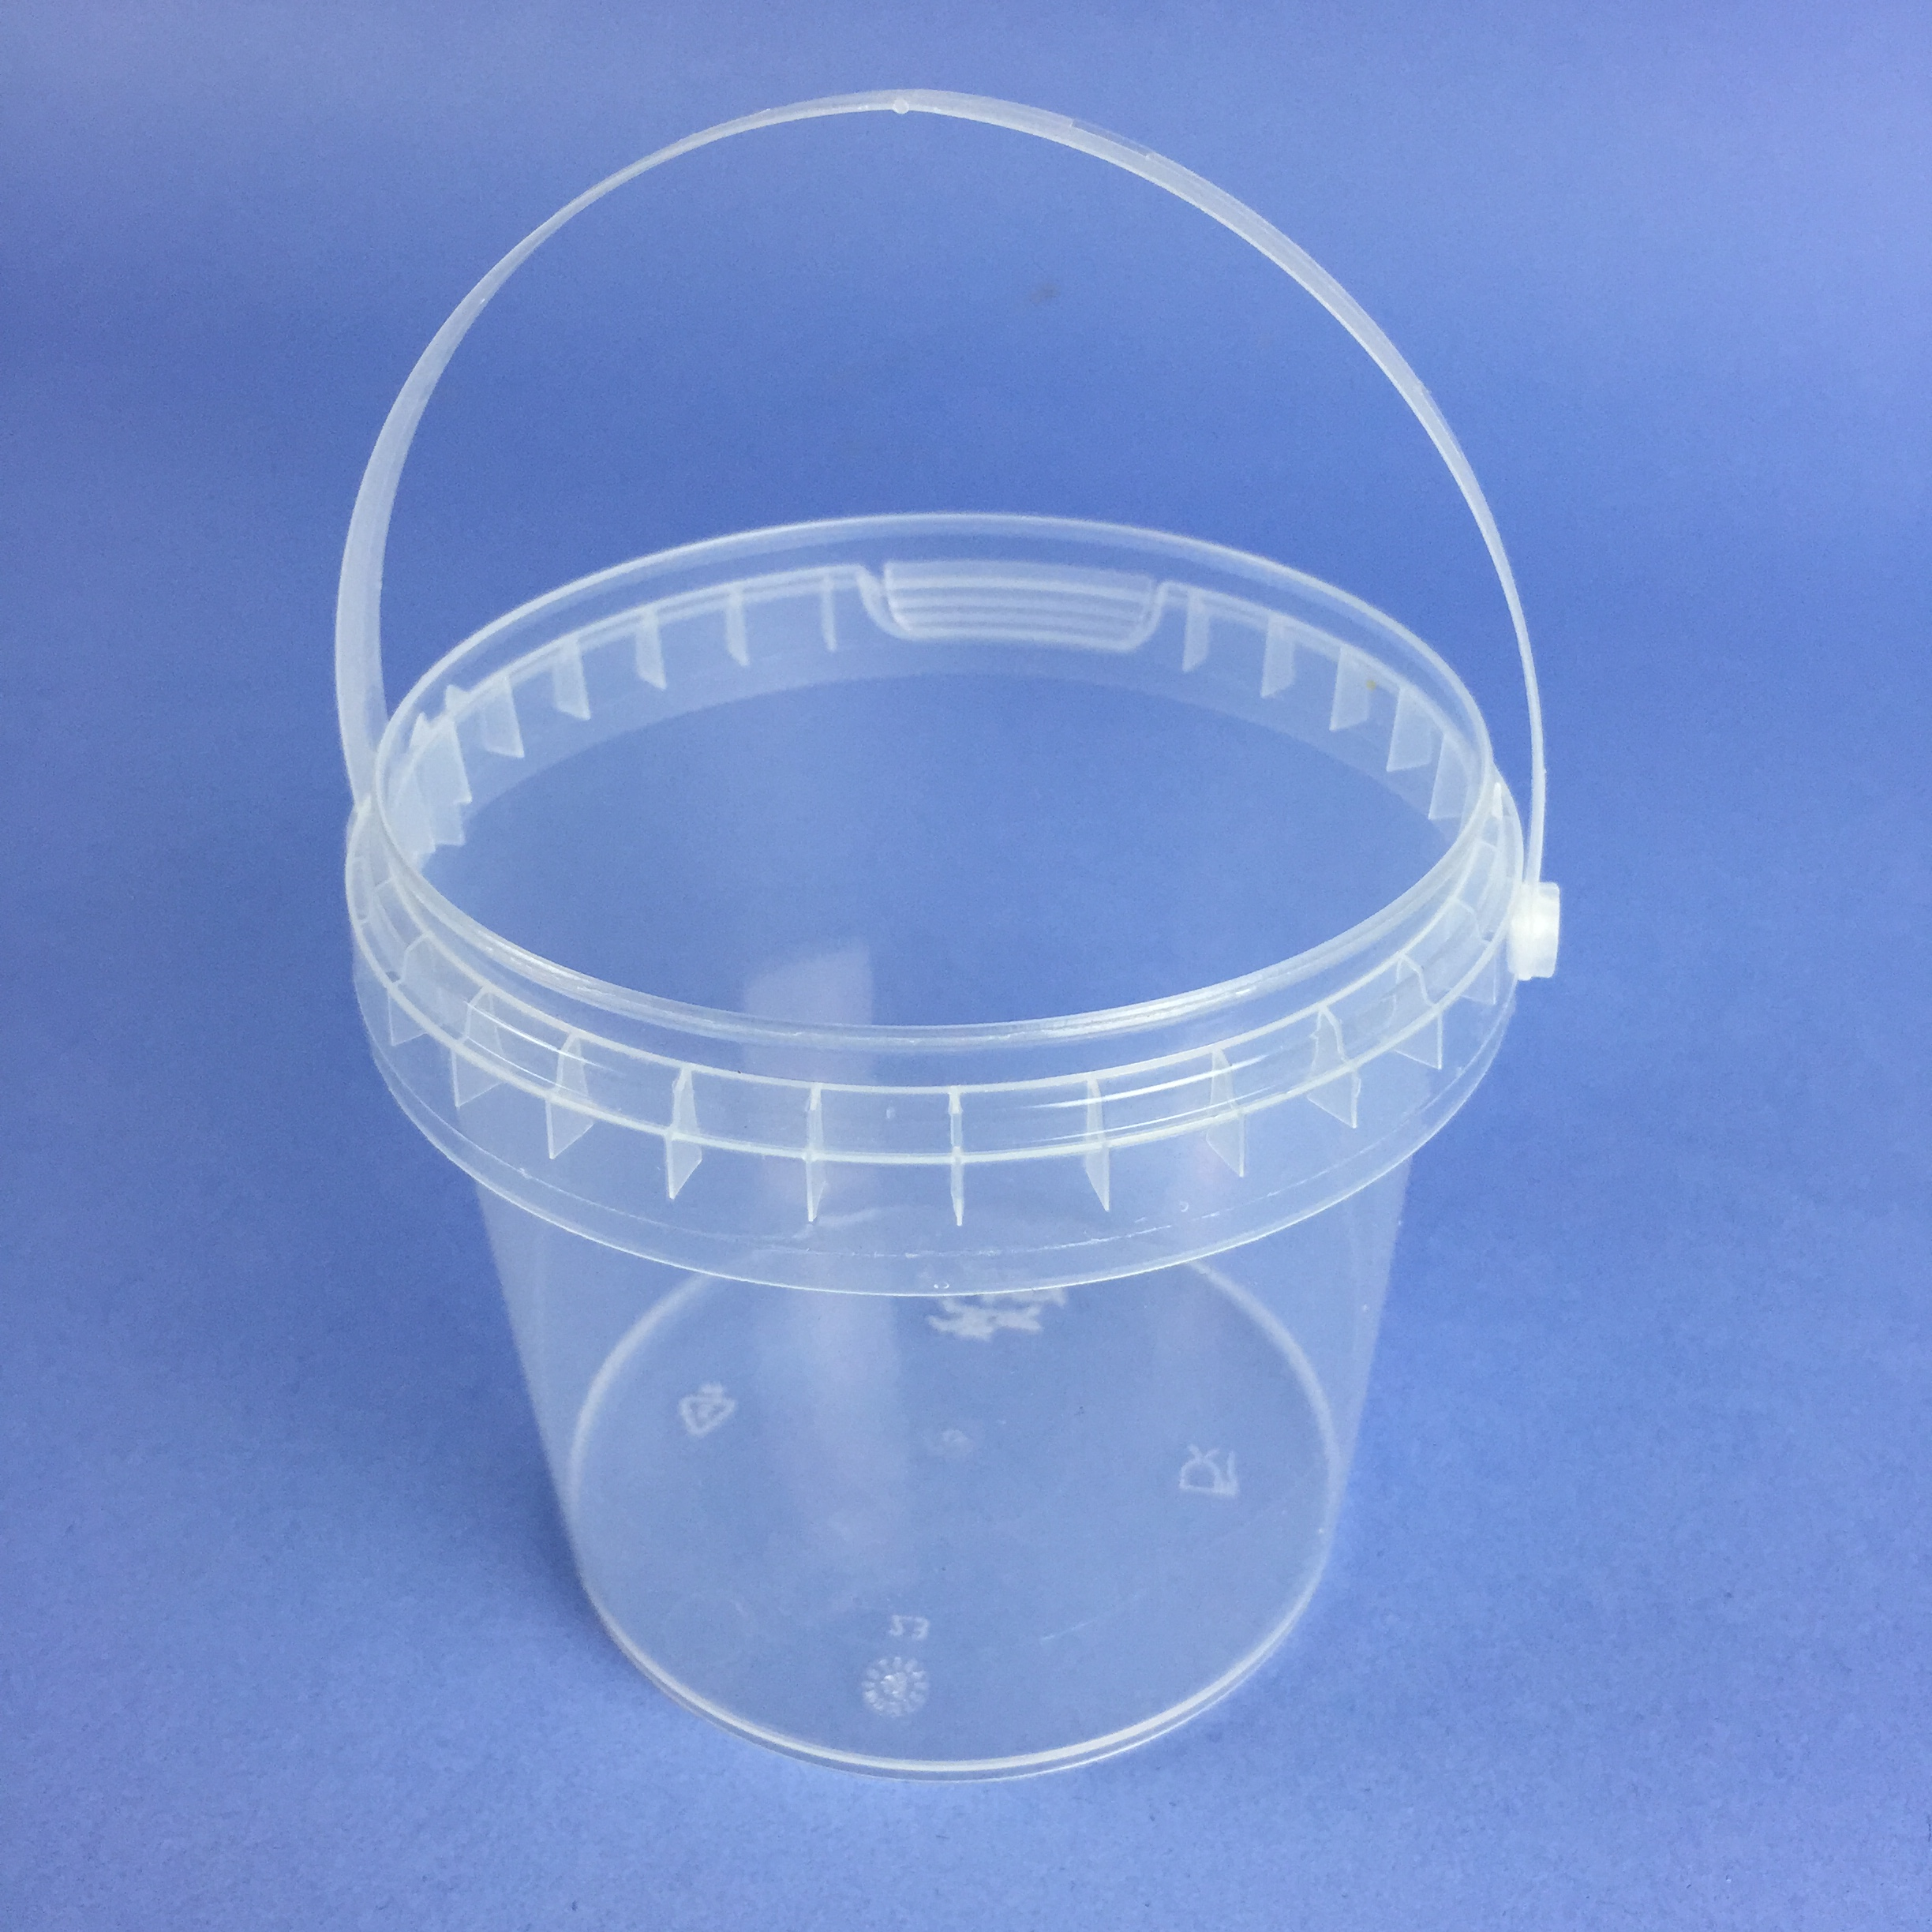 Small Volume Round Clear Tub 365ml complete with Handle - SV365C ...